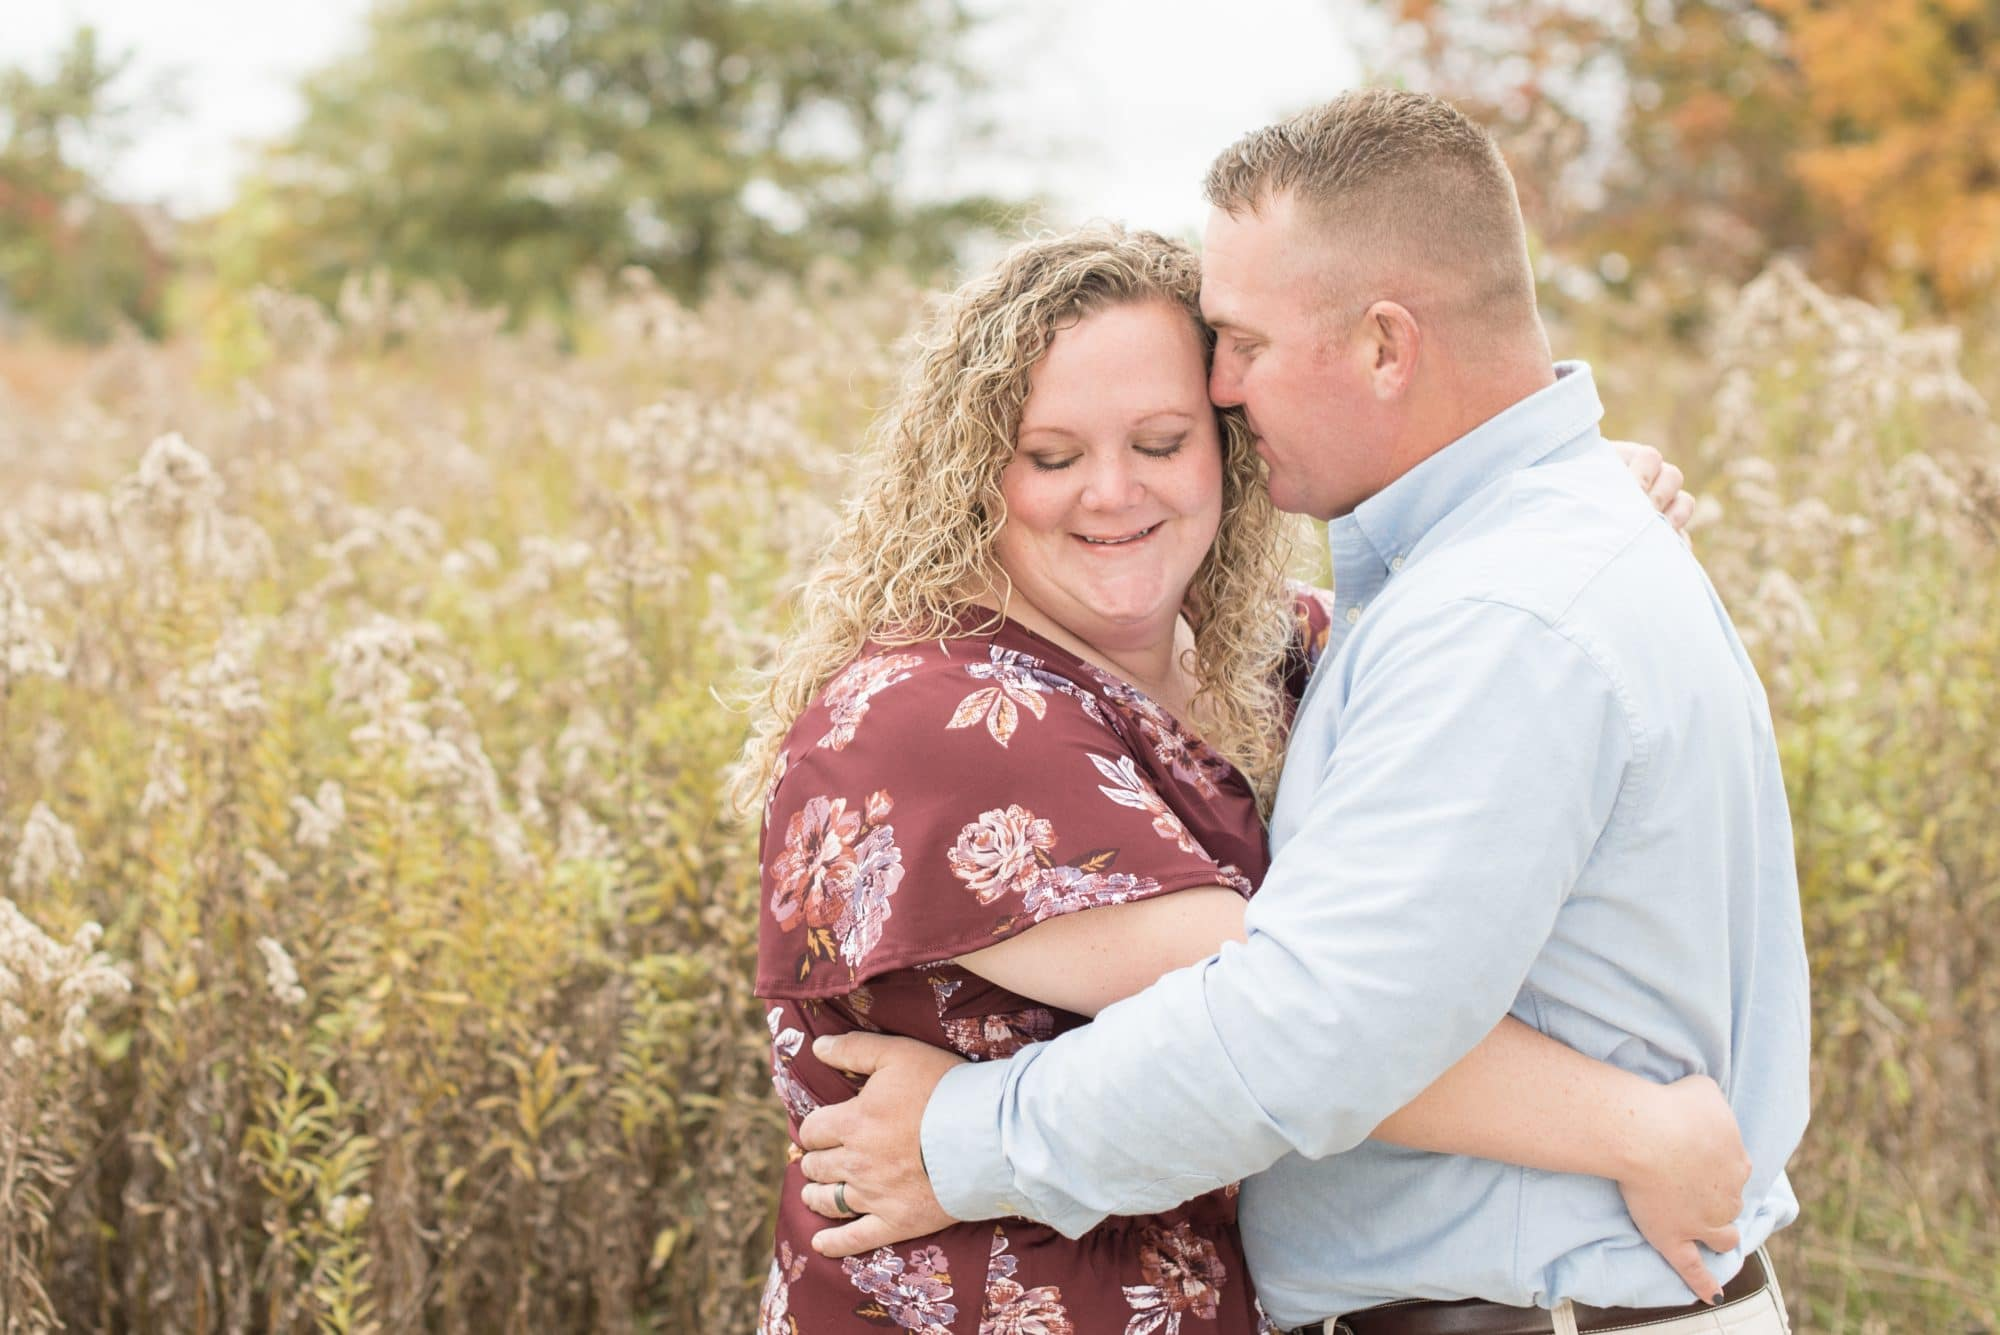 Anniversary photos taken at the Celery Bog in West Lafayette, Indiana by Victoria Rayburn Photography—a Lafayette, Indiana wedding photographer